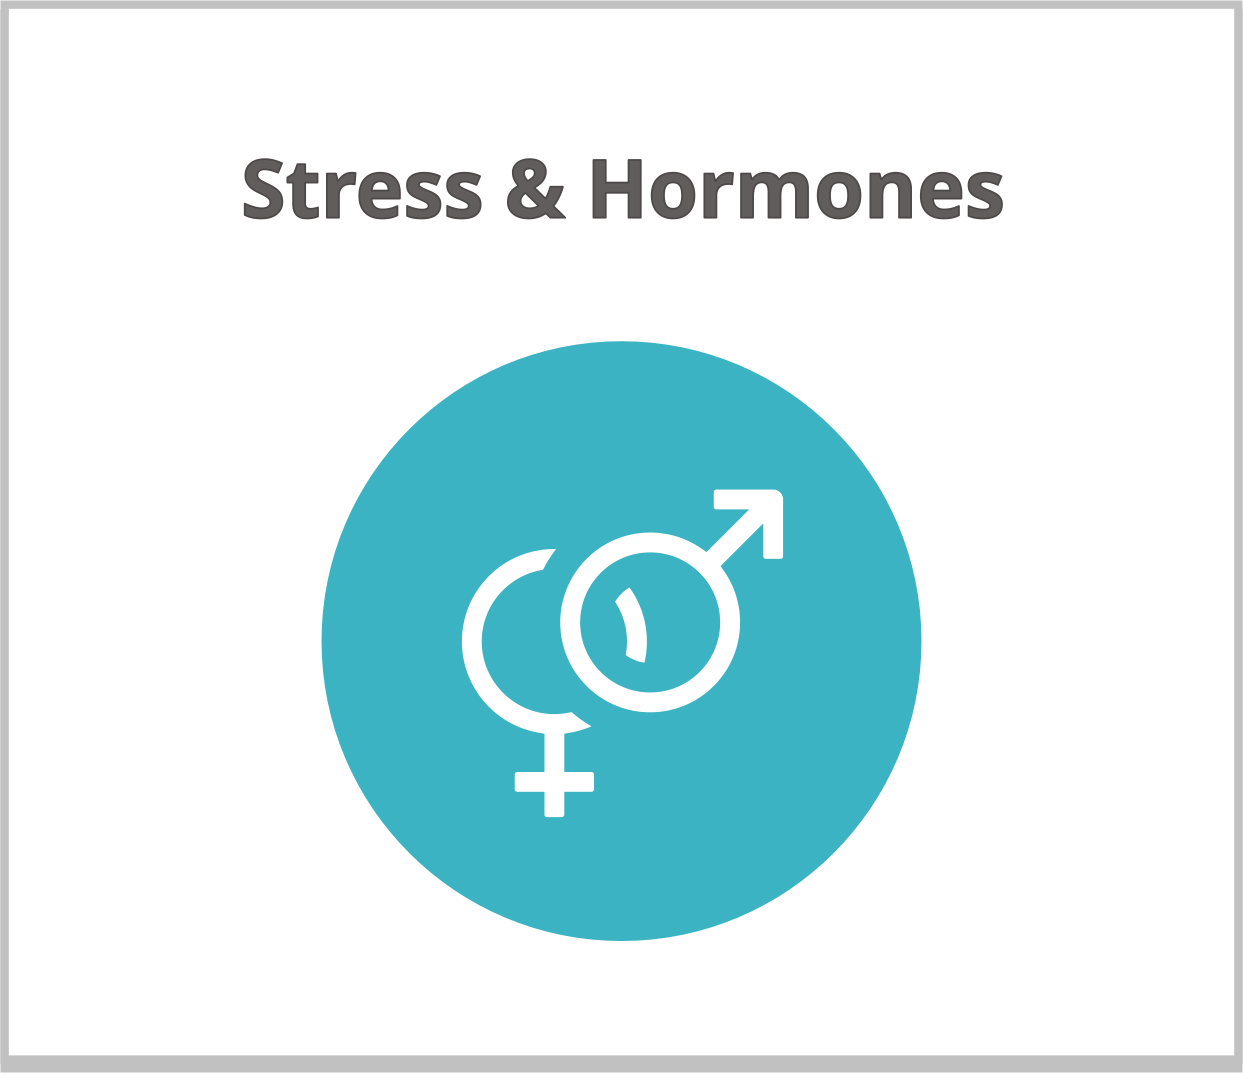 4 stress hormones icon